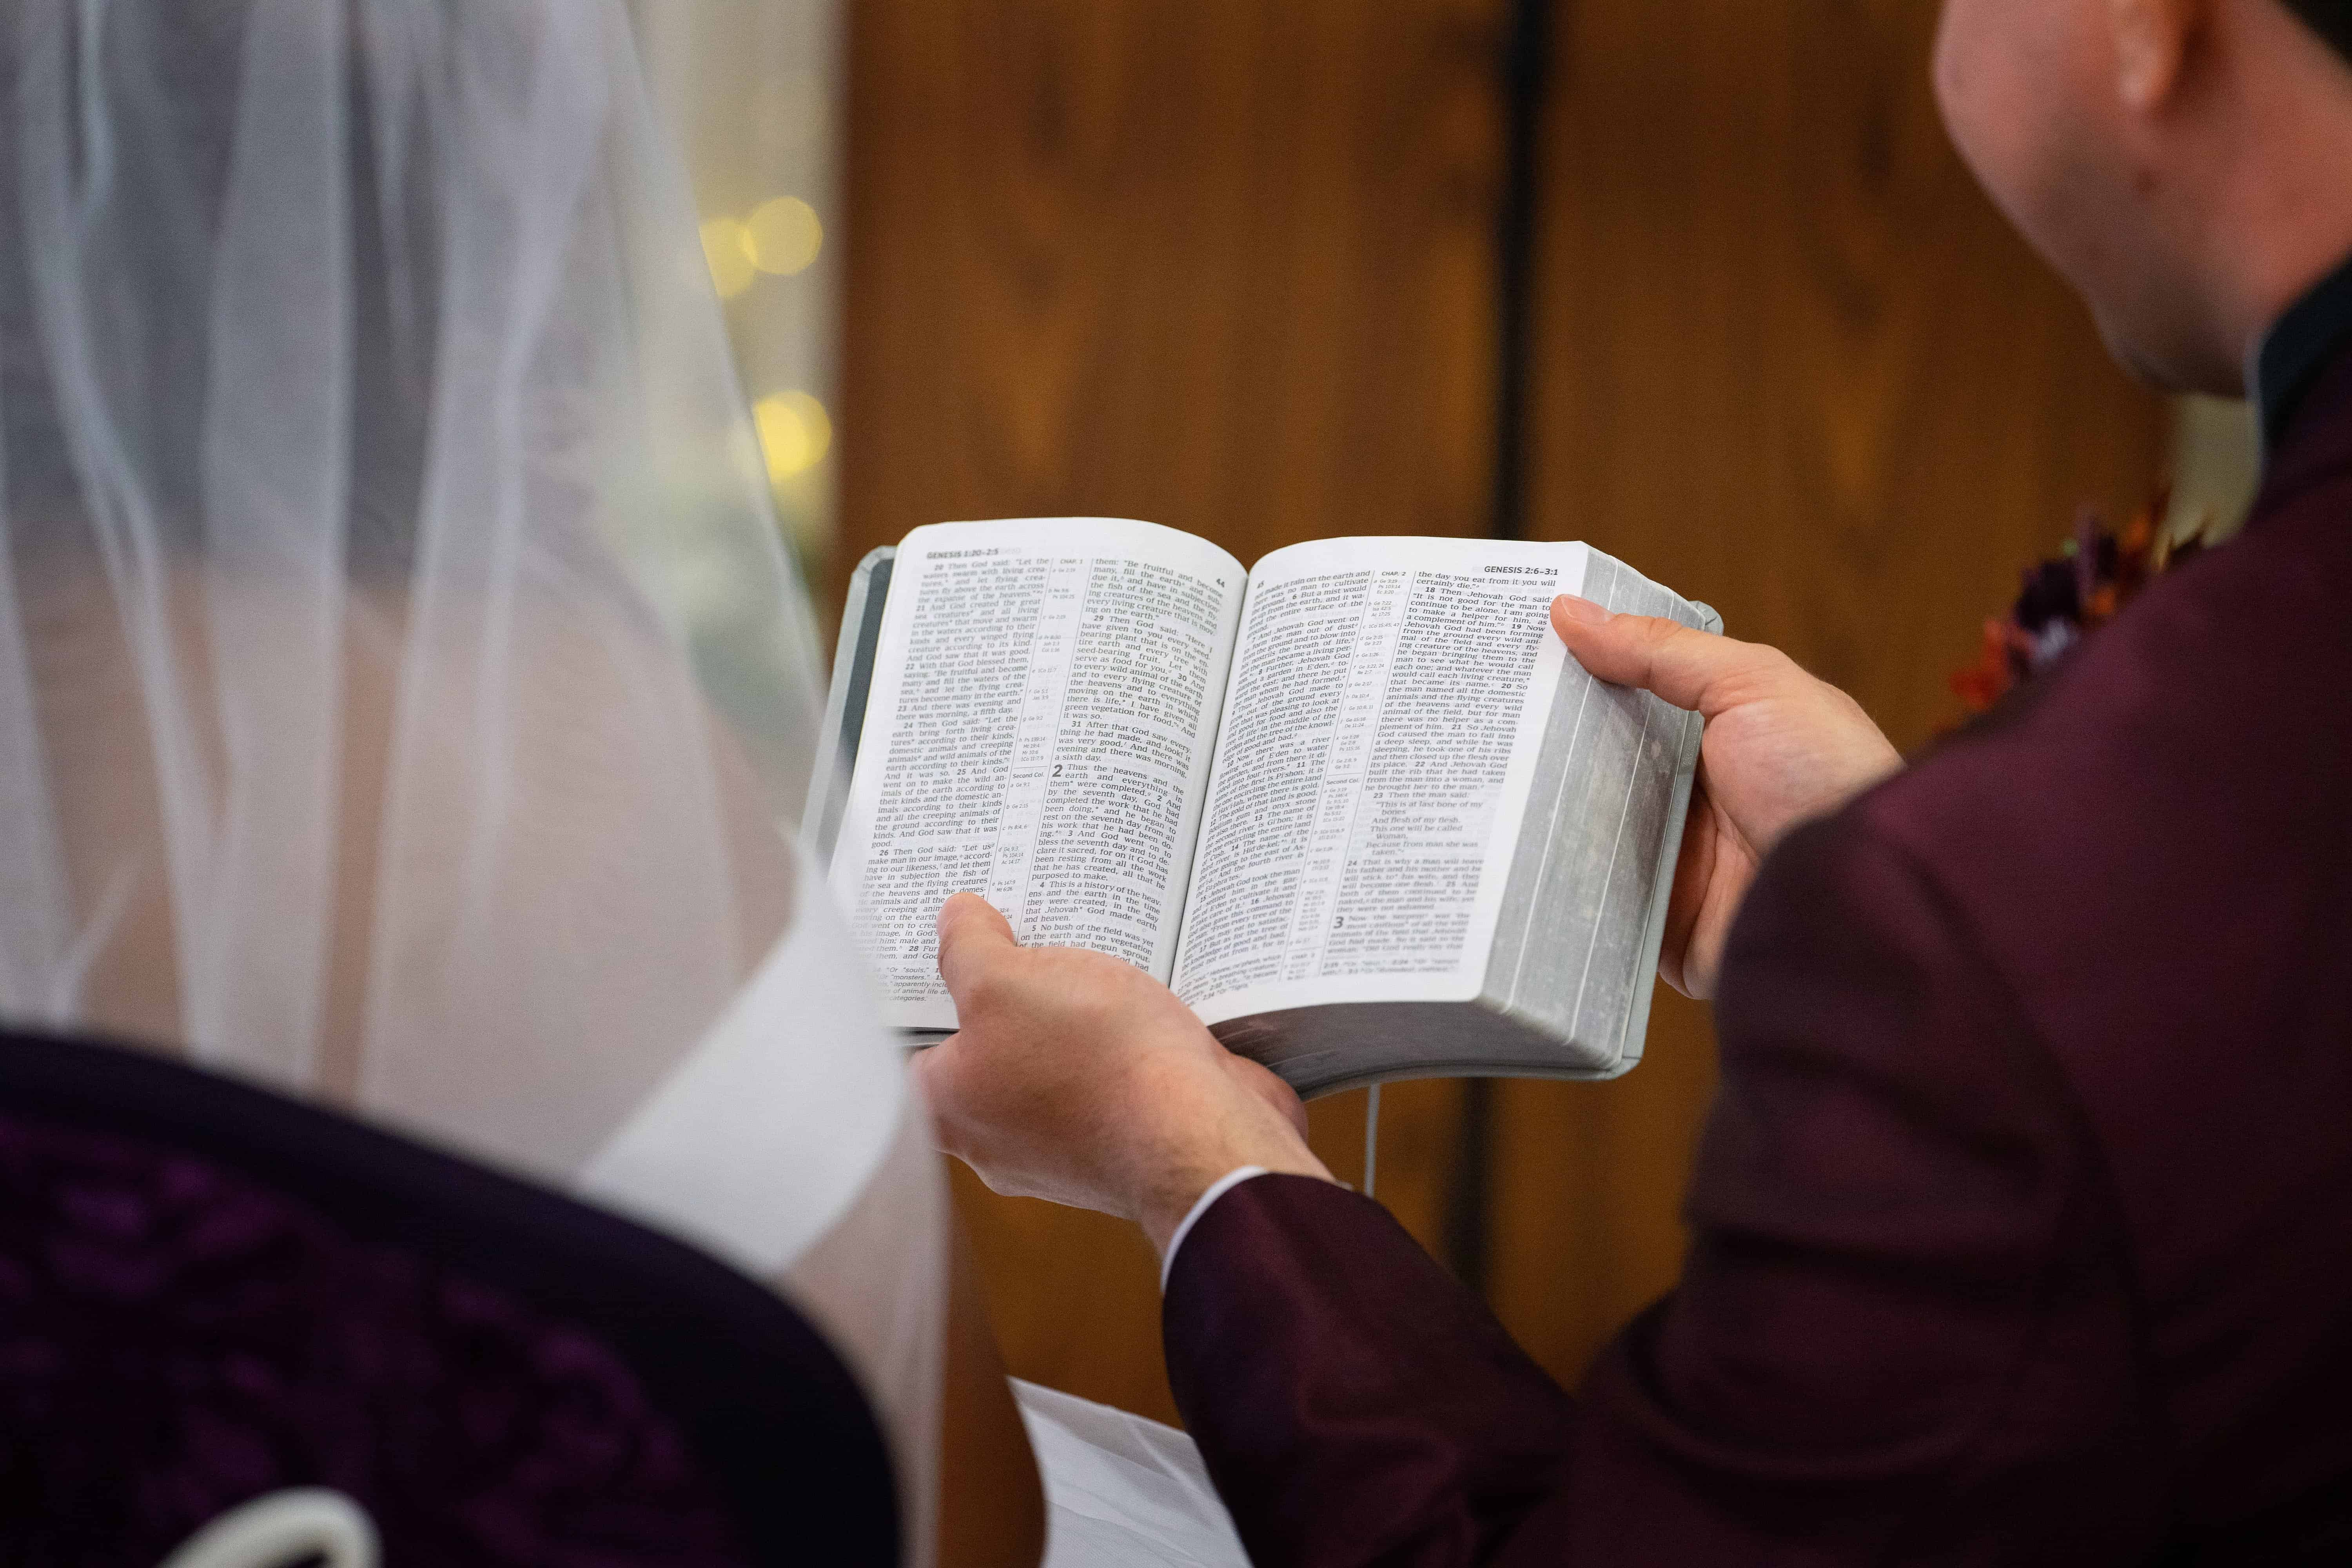 5 groom holding bible during wedding ceremony in Oberlin